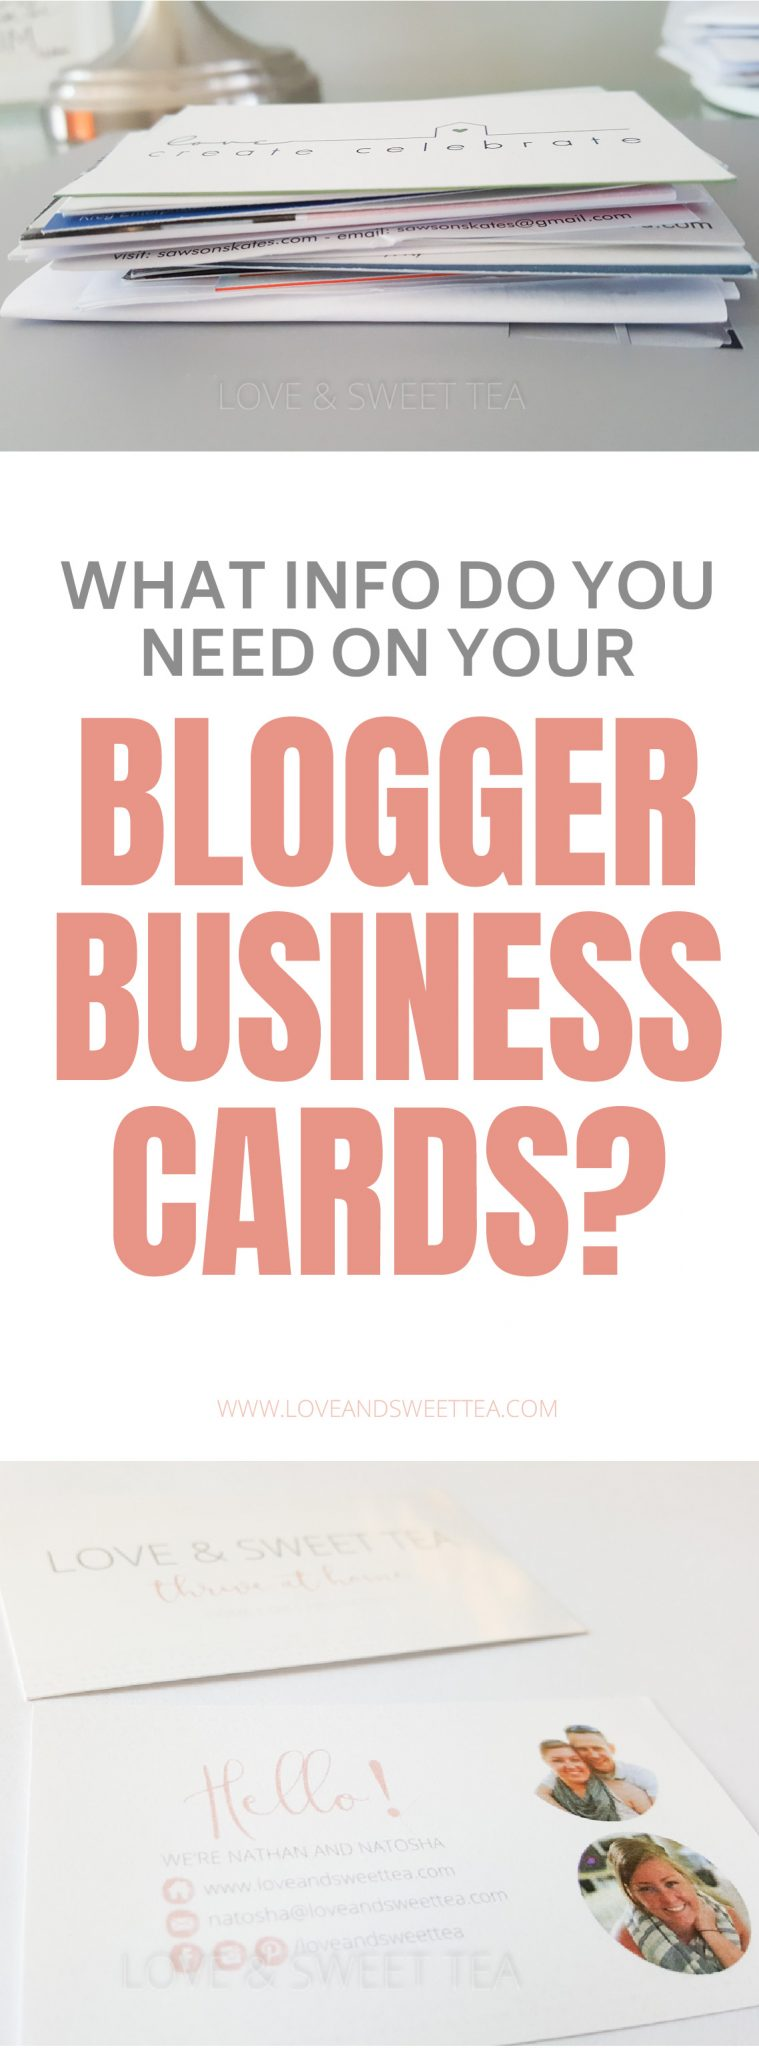 I need to make business cards images free business cards blogger business cards business cards for bloggers i need to make my blogger business cards for magicingreecefo Images